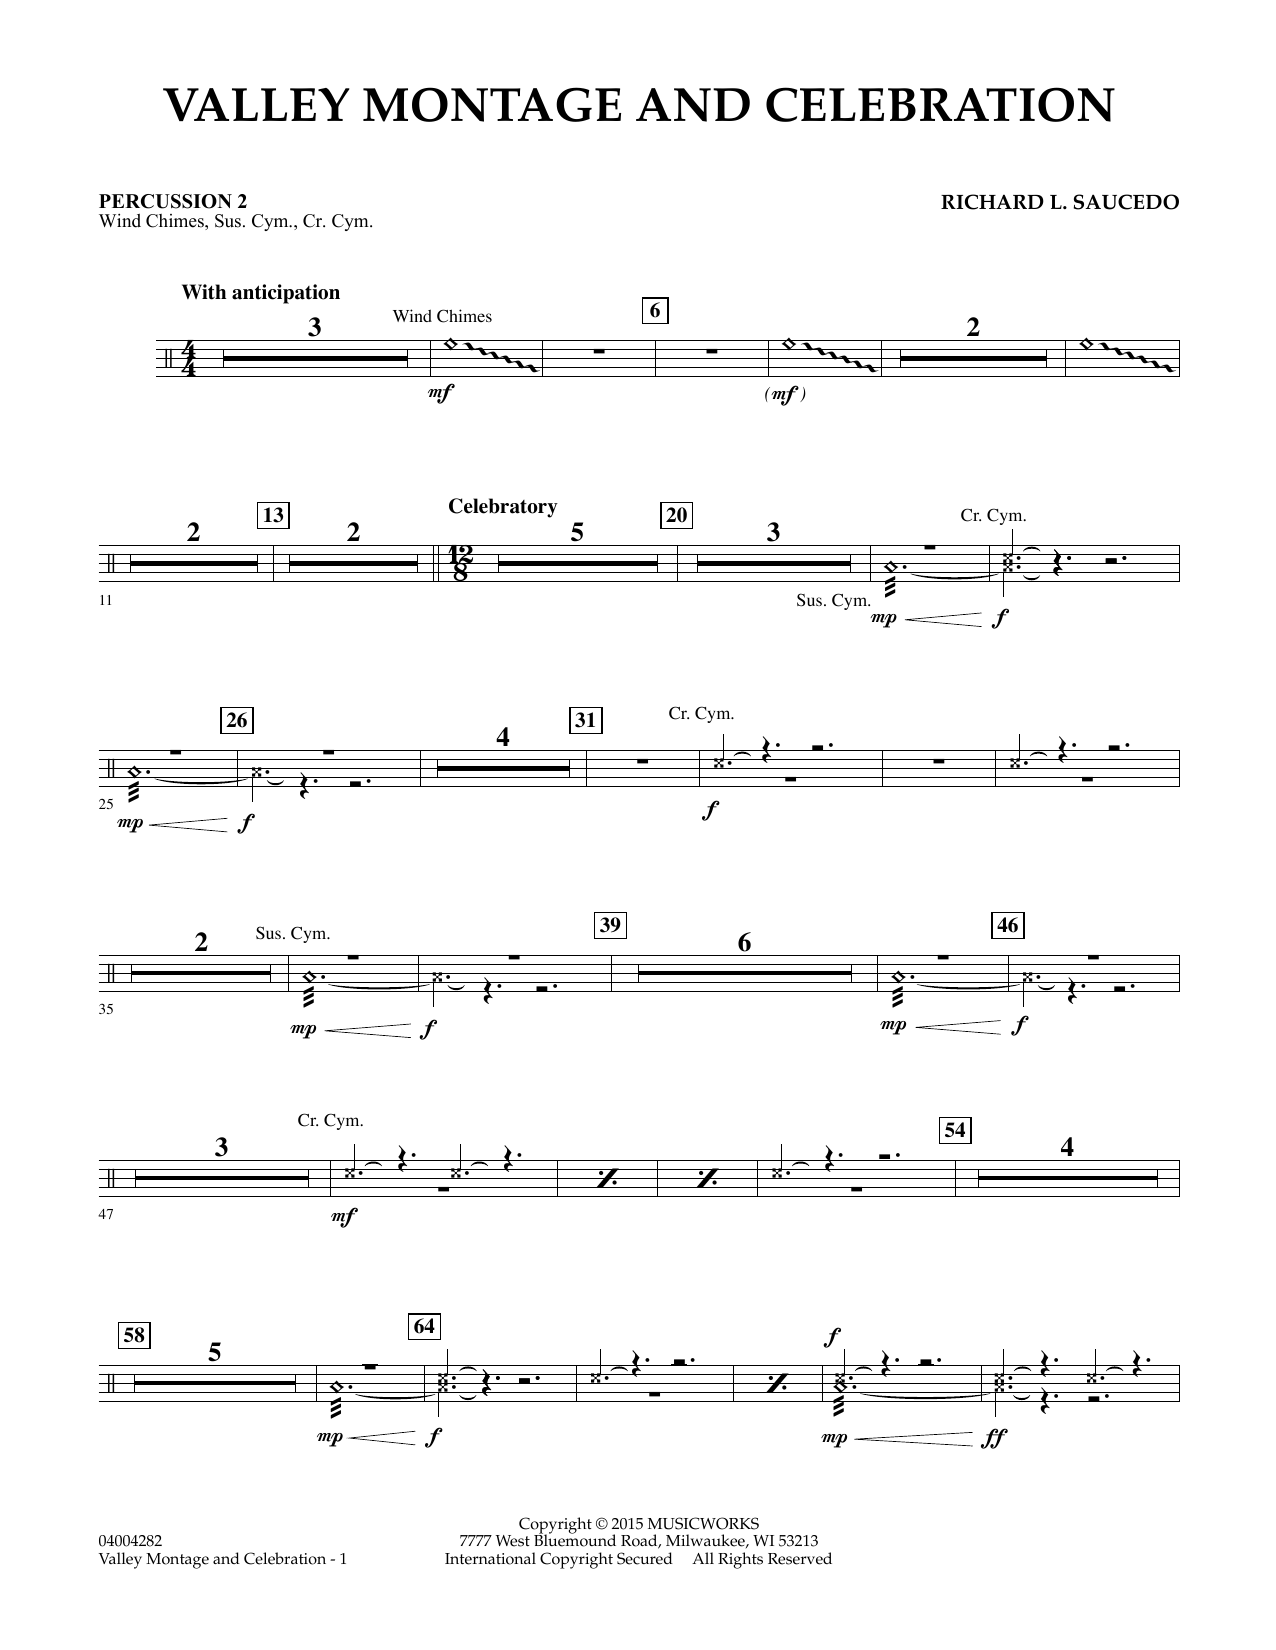 Richard L. Saucedo Valley Montage and Celebration - Percussion 2 sheet music notes and chords. Download Printable PDF.